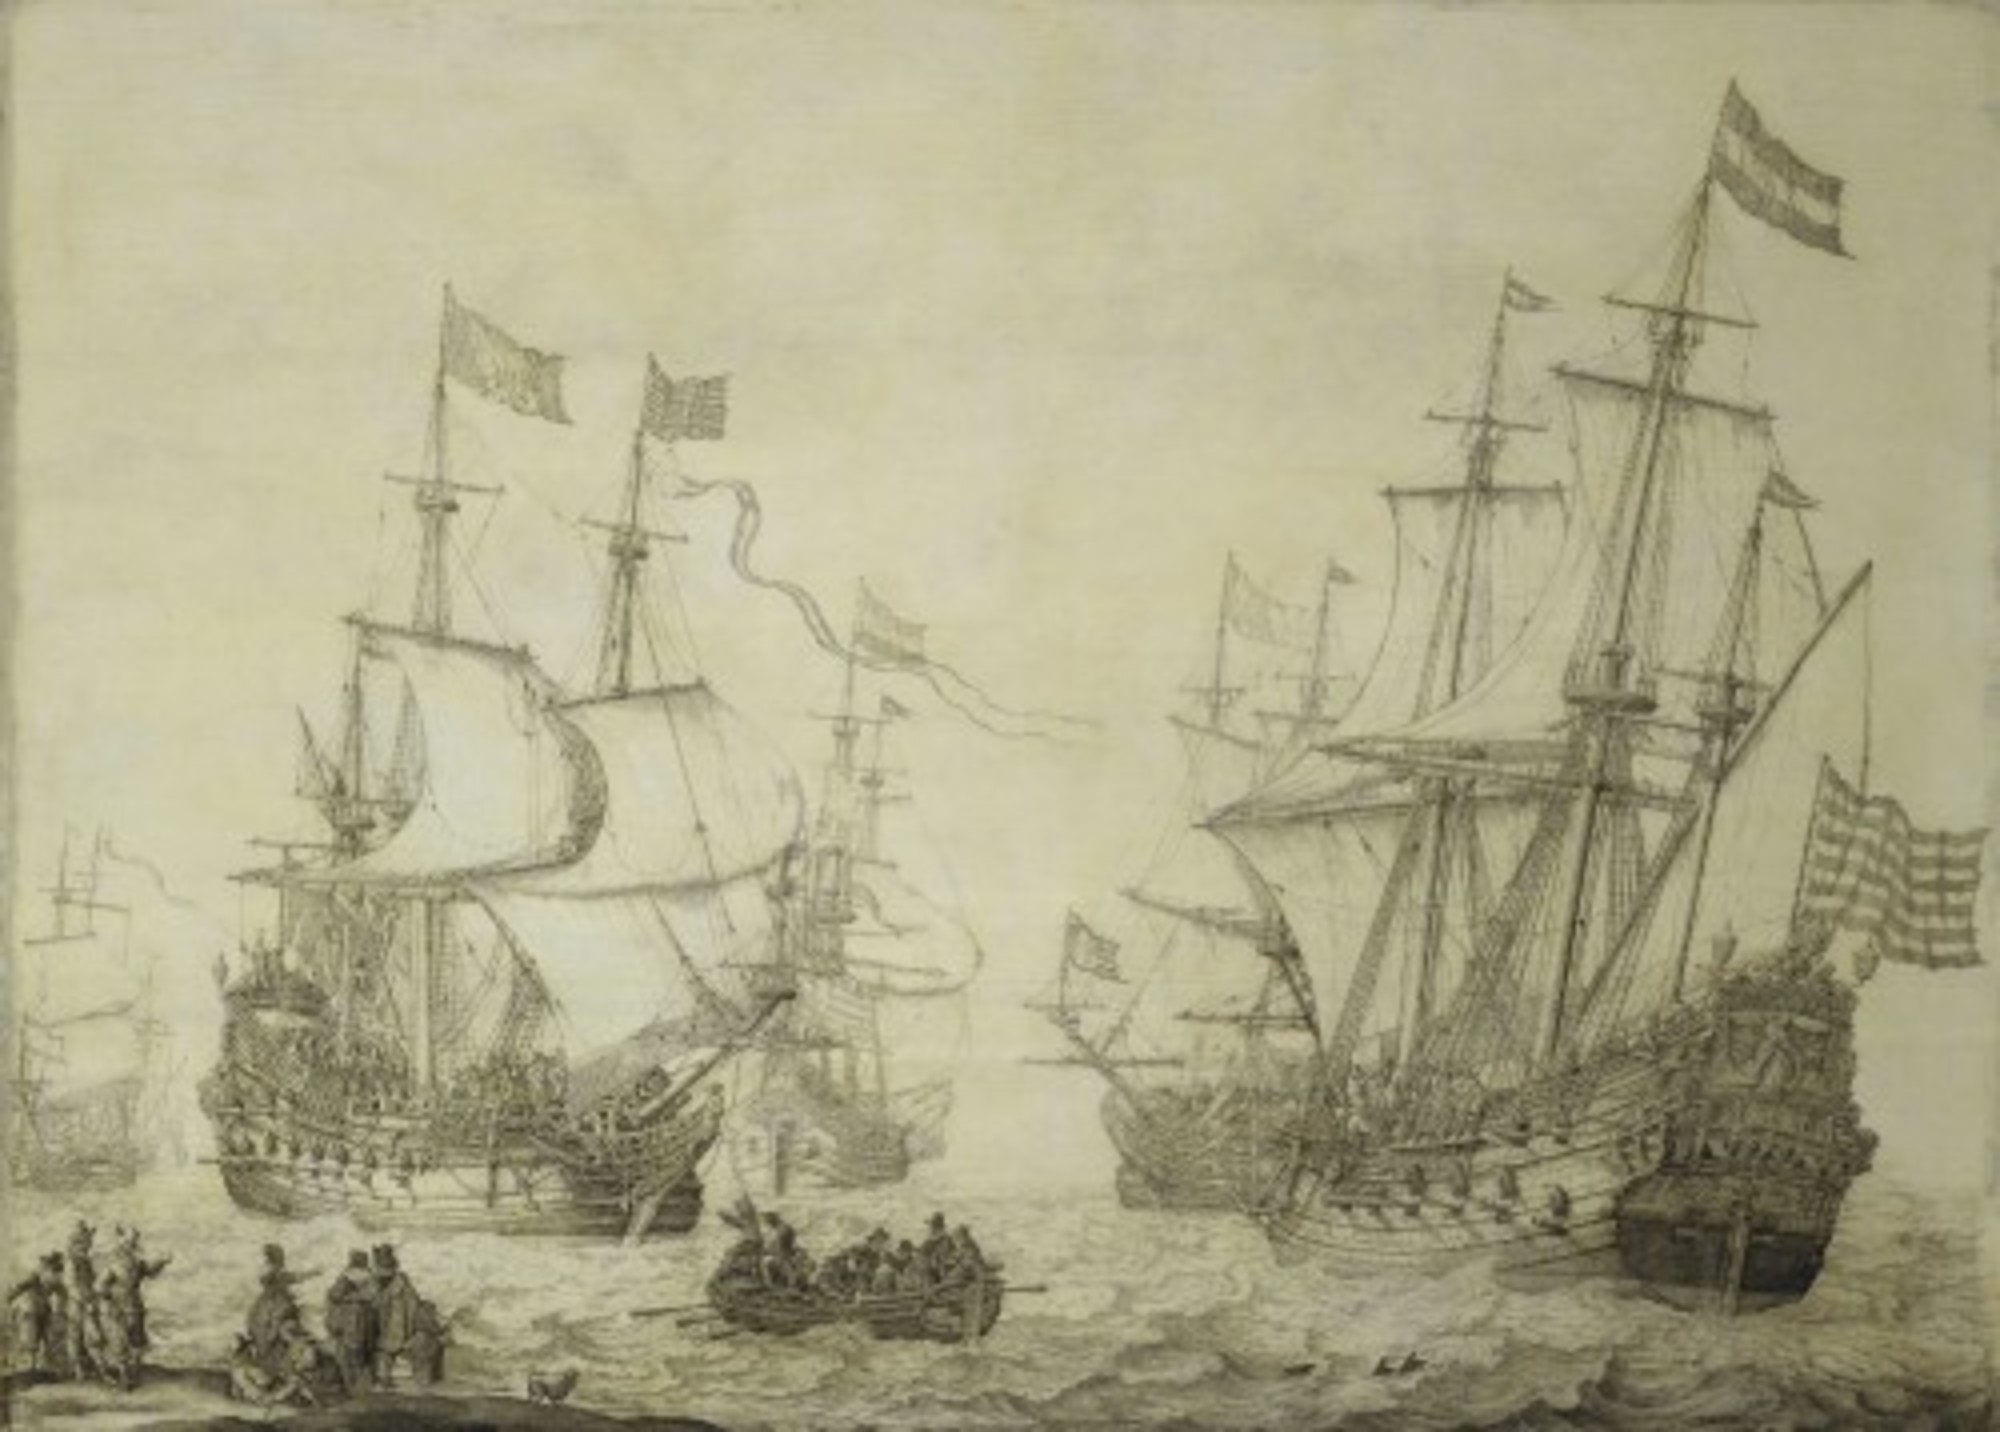 Two-Dutch-Merchant-Ships-Under-Sail-Near-the-Shore-in-a-Moderate-Breeze-RMG-BHC0860.jpg